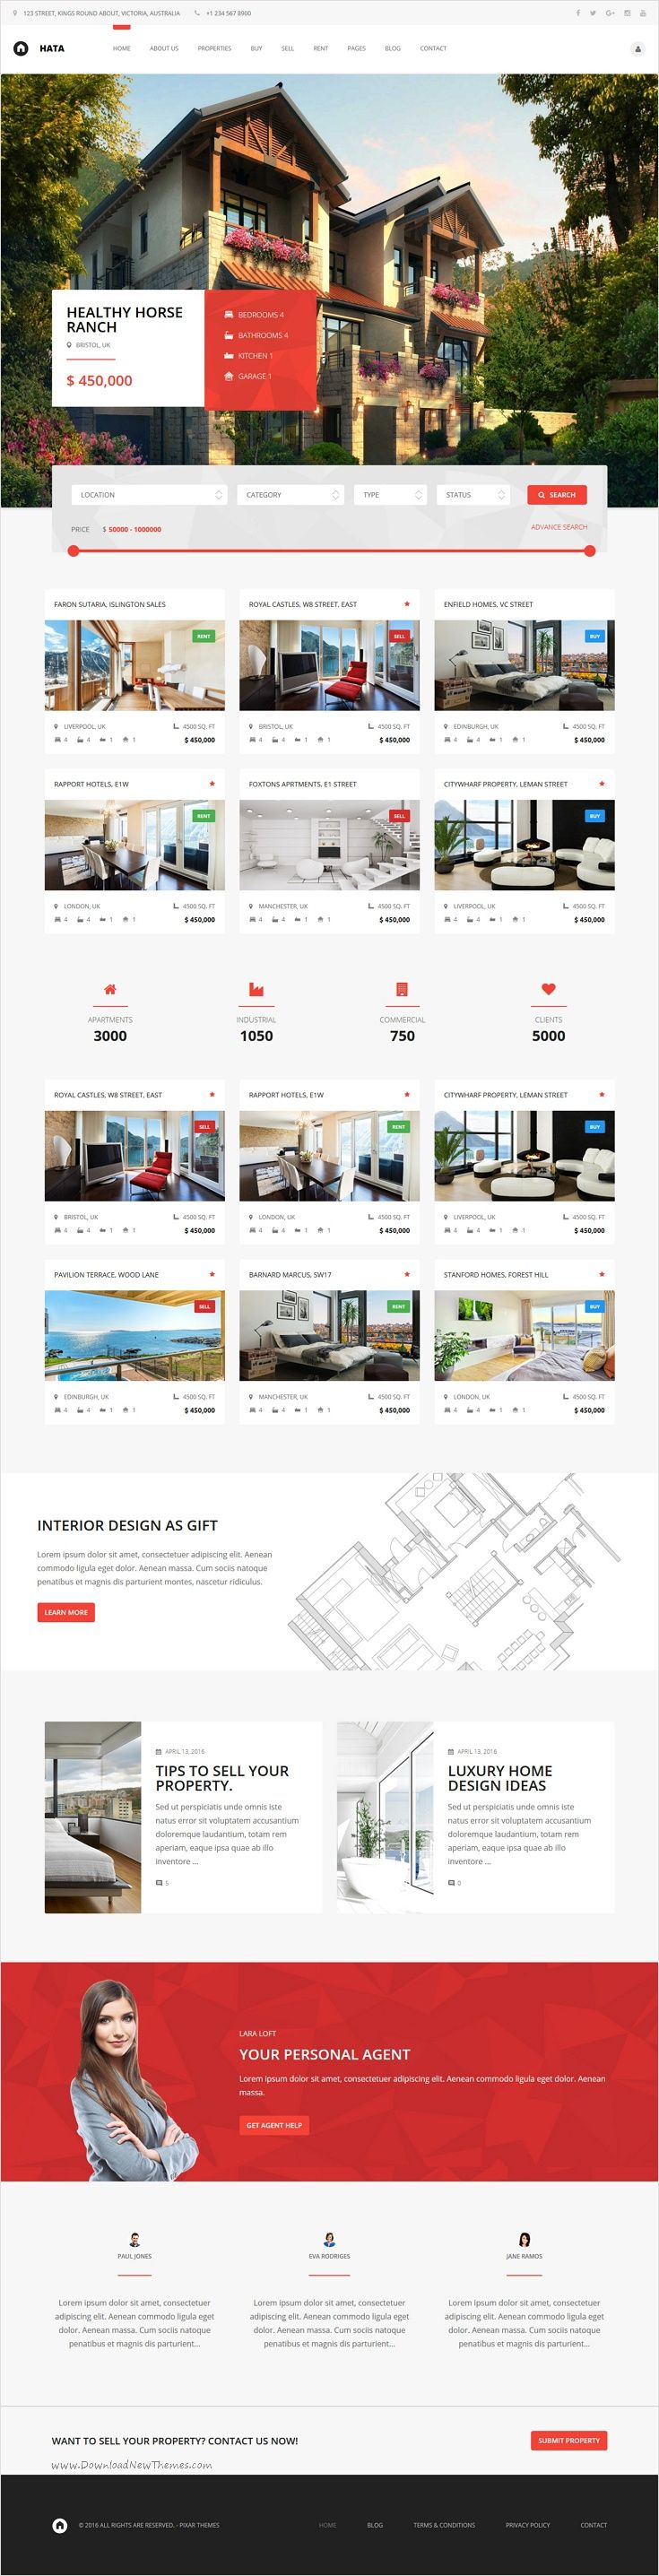 Hata is a very clean and modern design #WordPress theme for #realestate, #property #agents website download now➩ https://themeforest.net/item/hata-real-estate/16828651?ref=Datasata